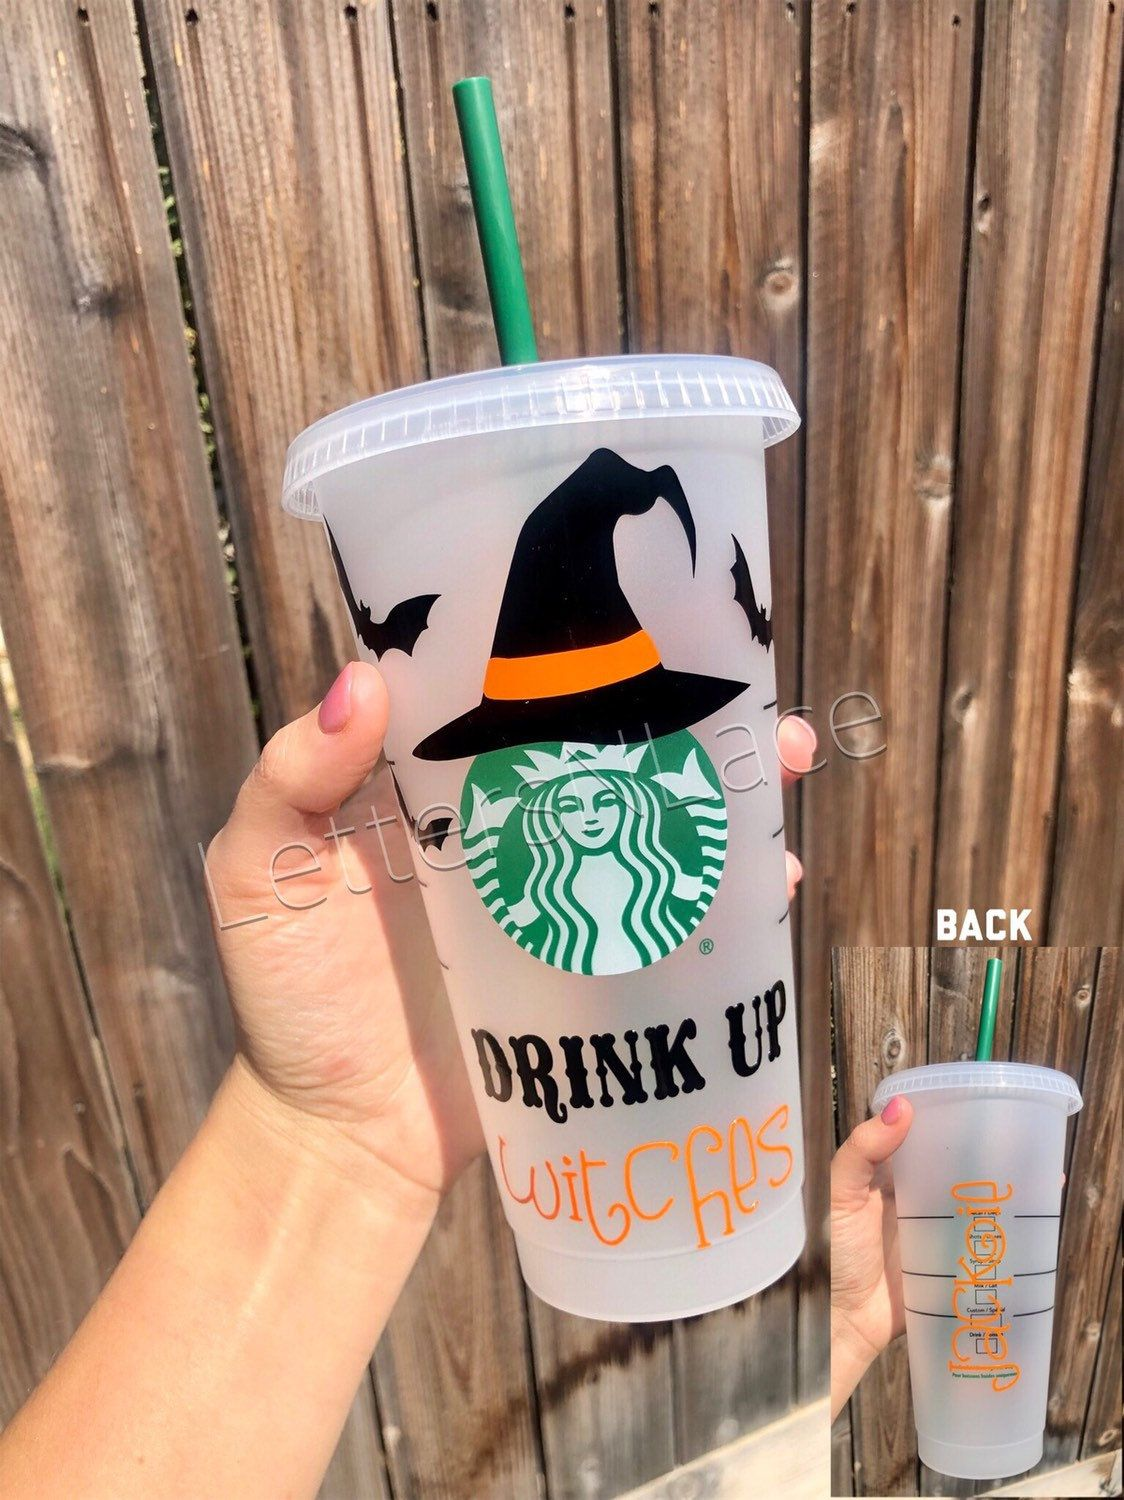 Drink Up Witches Starbucks Cup Witch Starbucks Cup Halloween Coffee Cup Halloween Starbucks Cup Witches Starbuck Halloween Cups Starbucks Cups Halloween Coffee